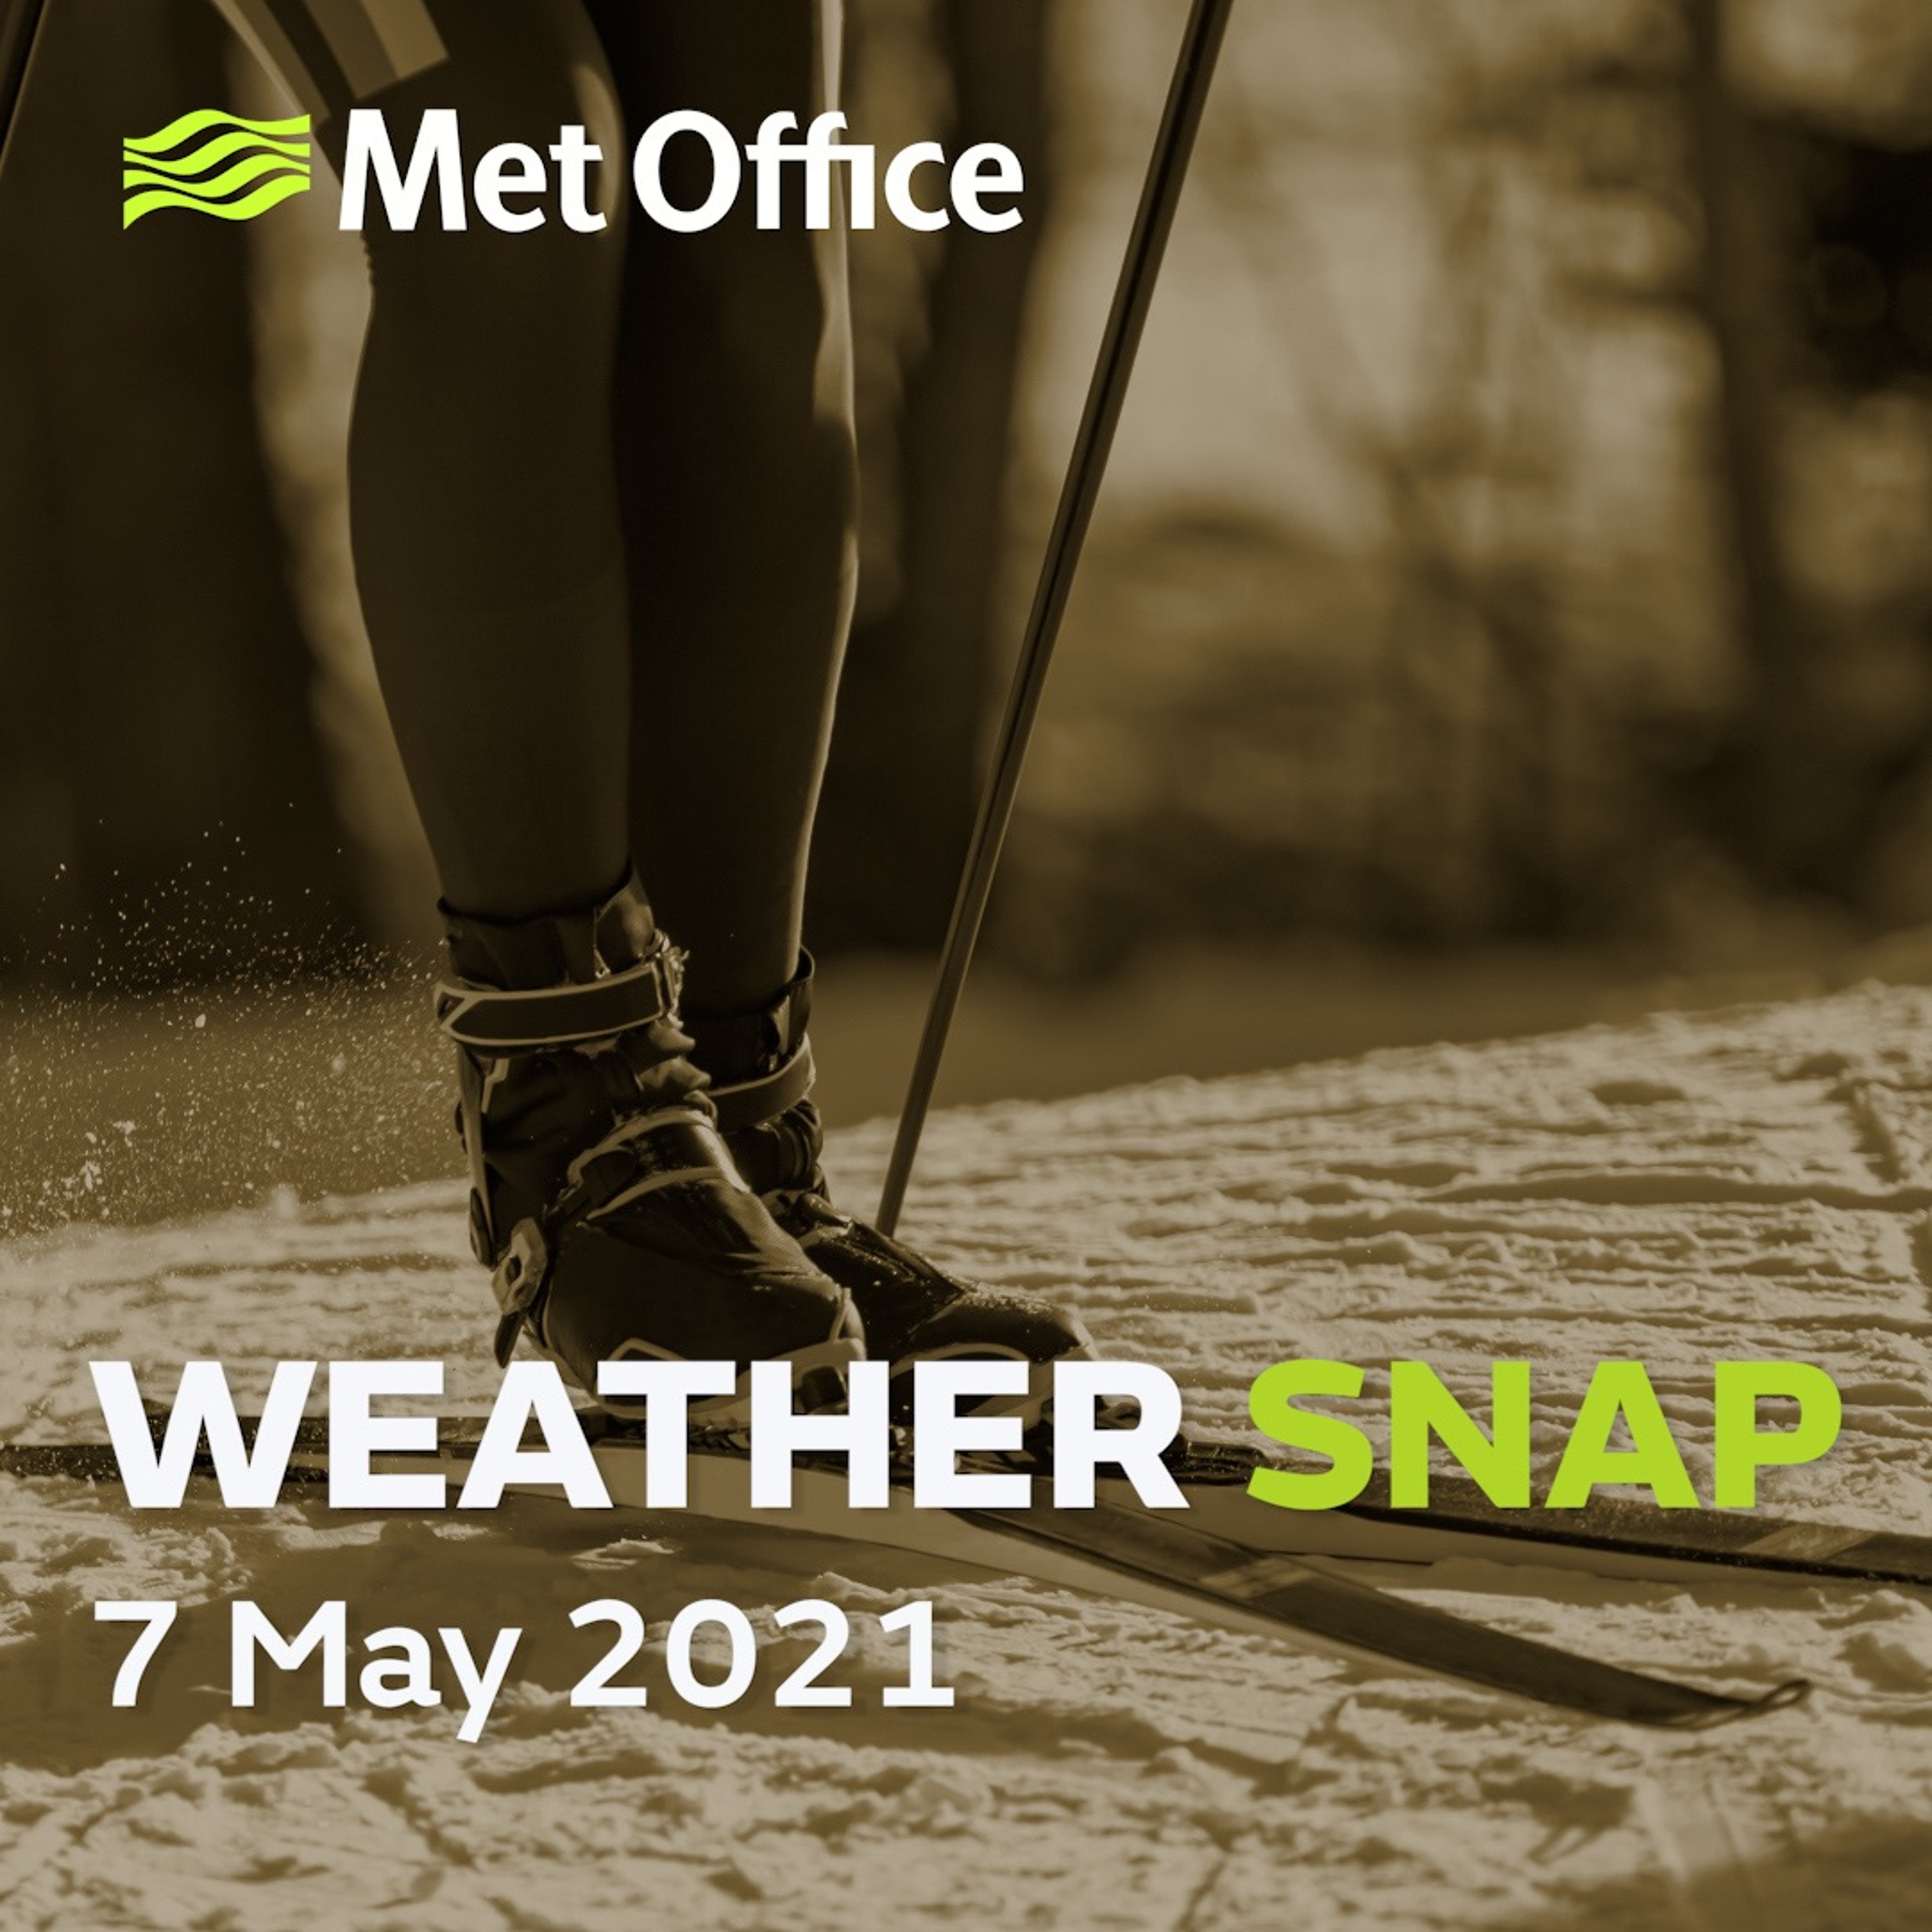 Weather Snap 7 May 2021